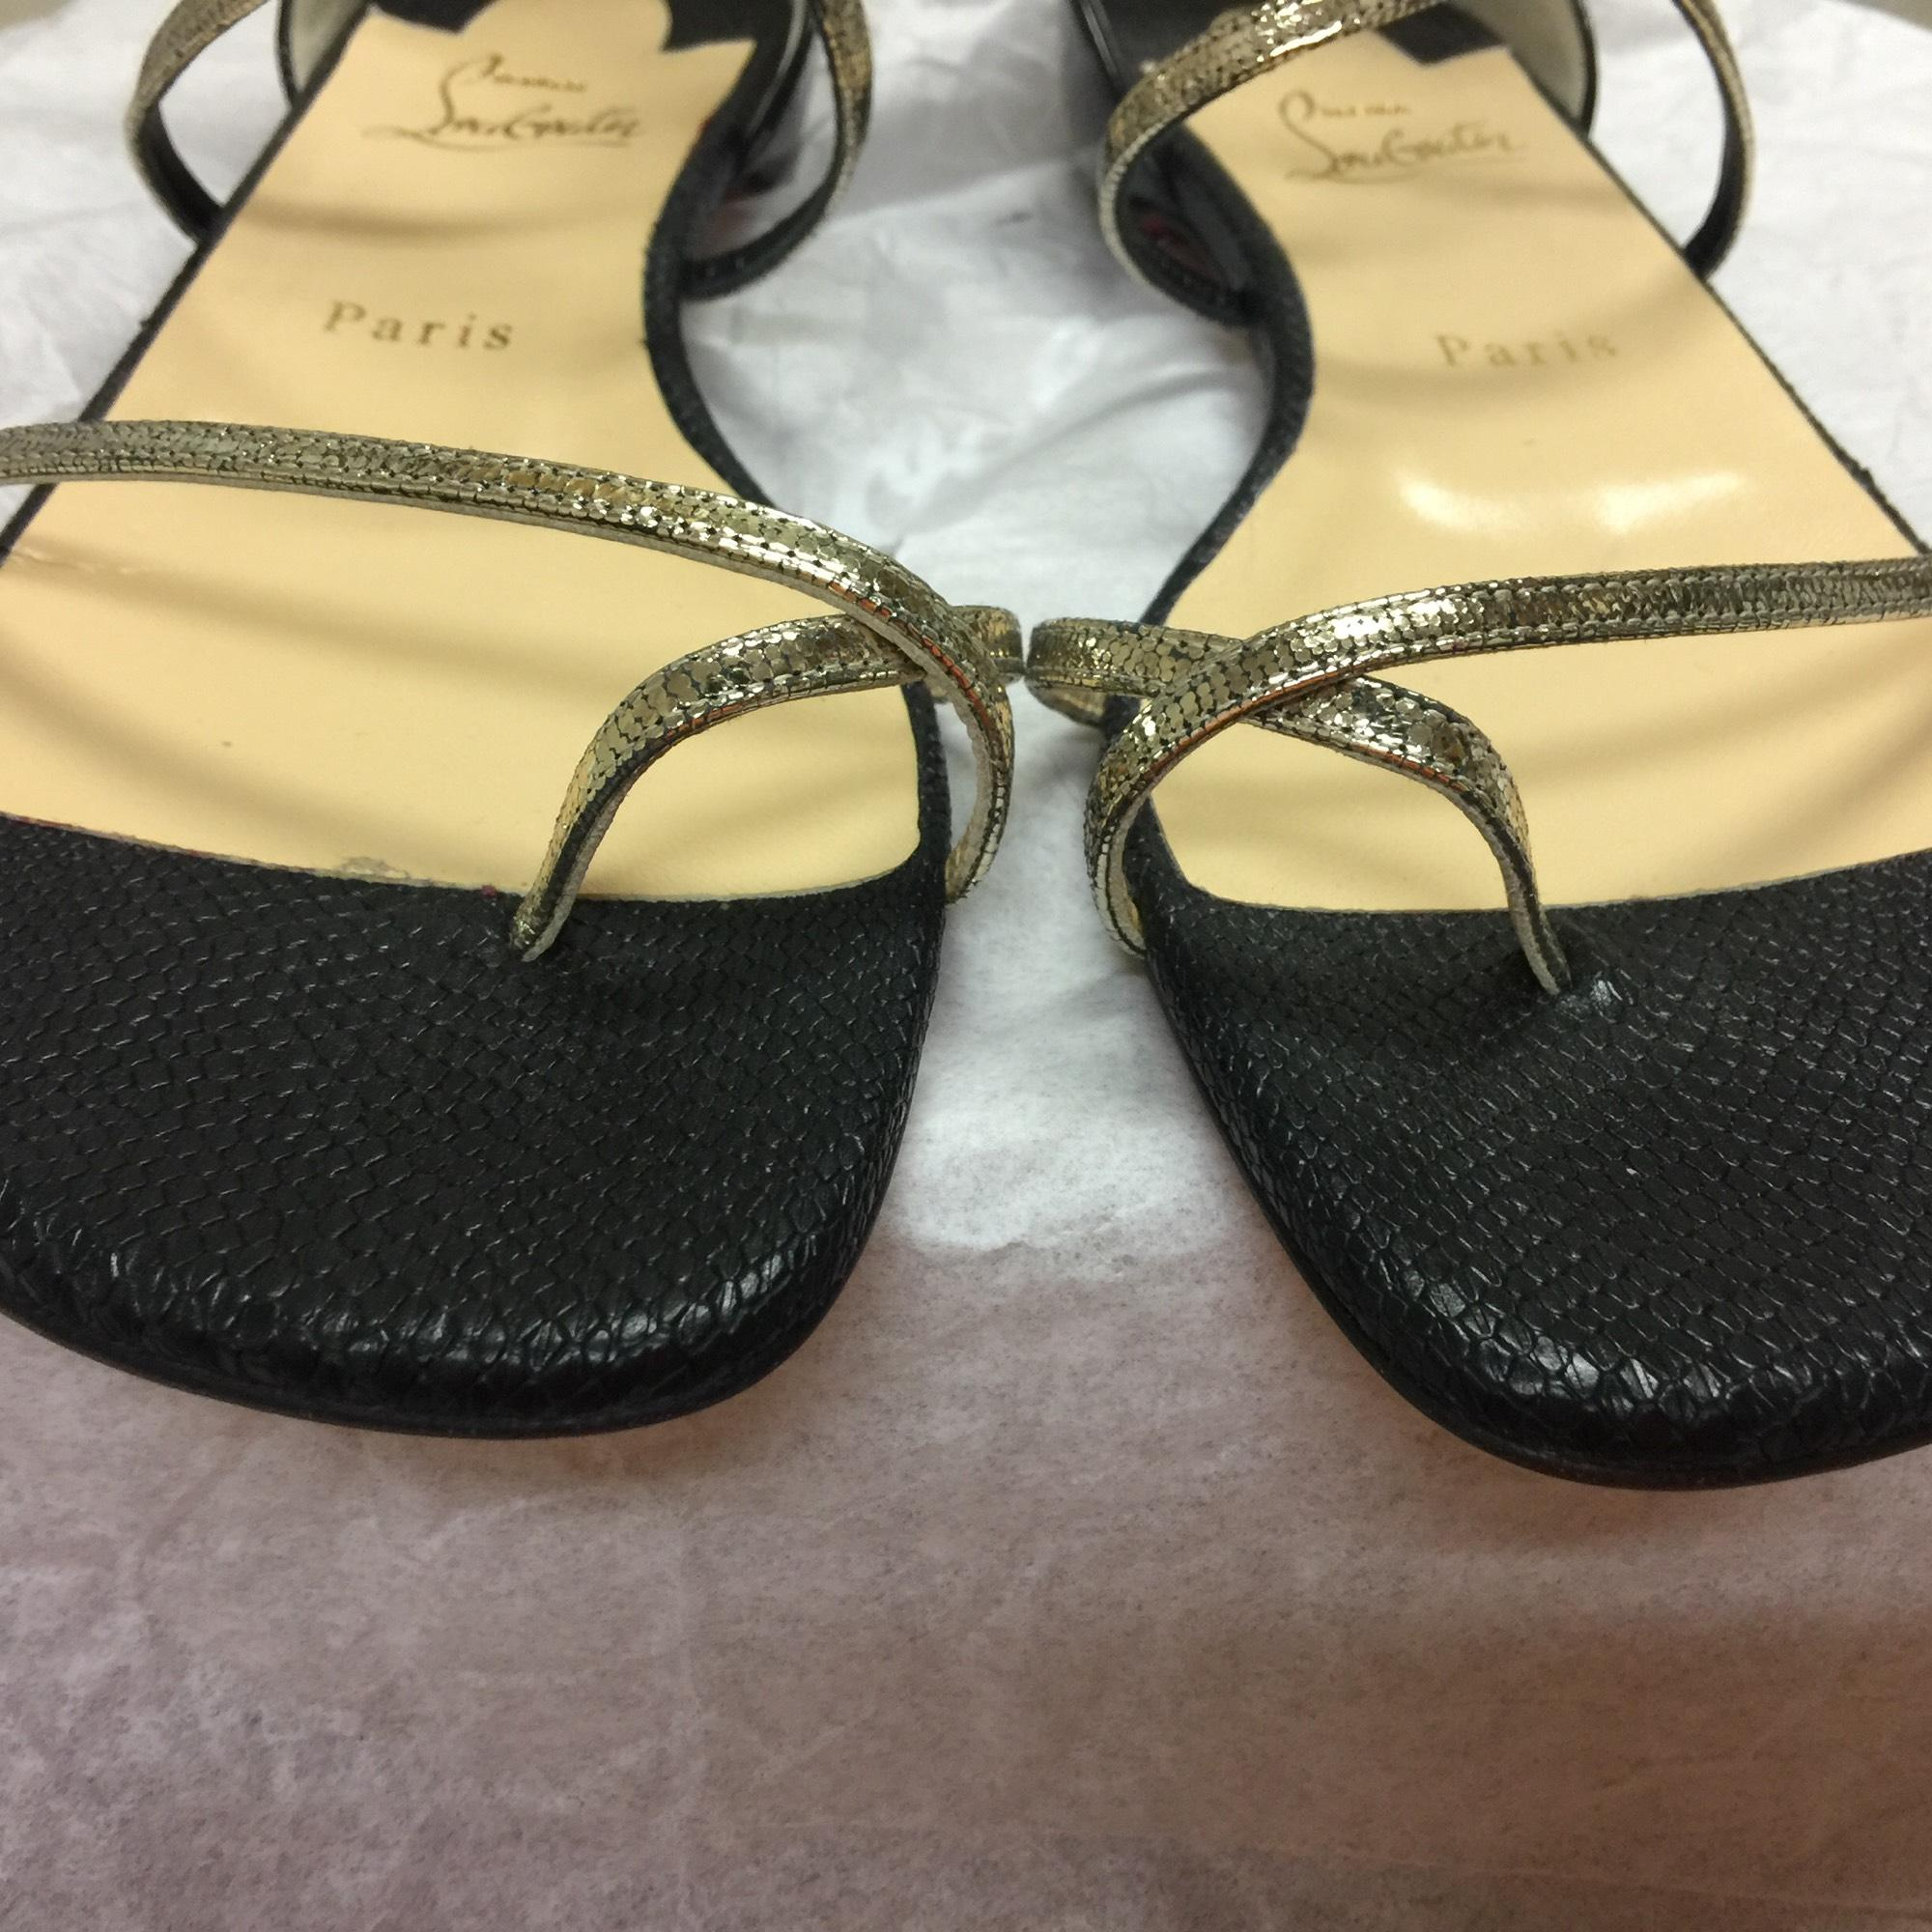 462c0a329c9071 727aa 4c125  uk christian louboutin antigua bay flat black platinum sandals.  123456789 3e5dd e70ff